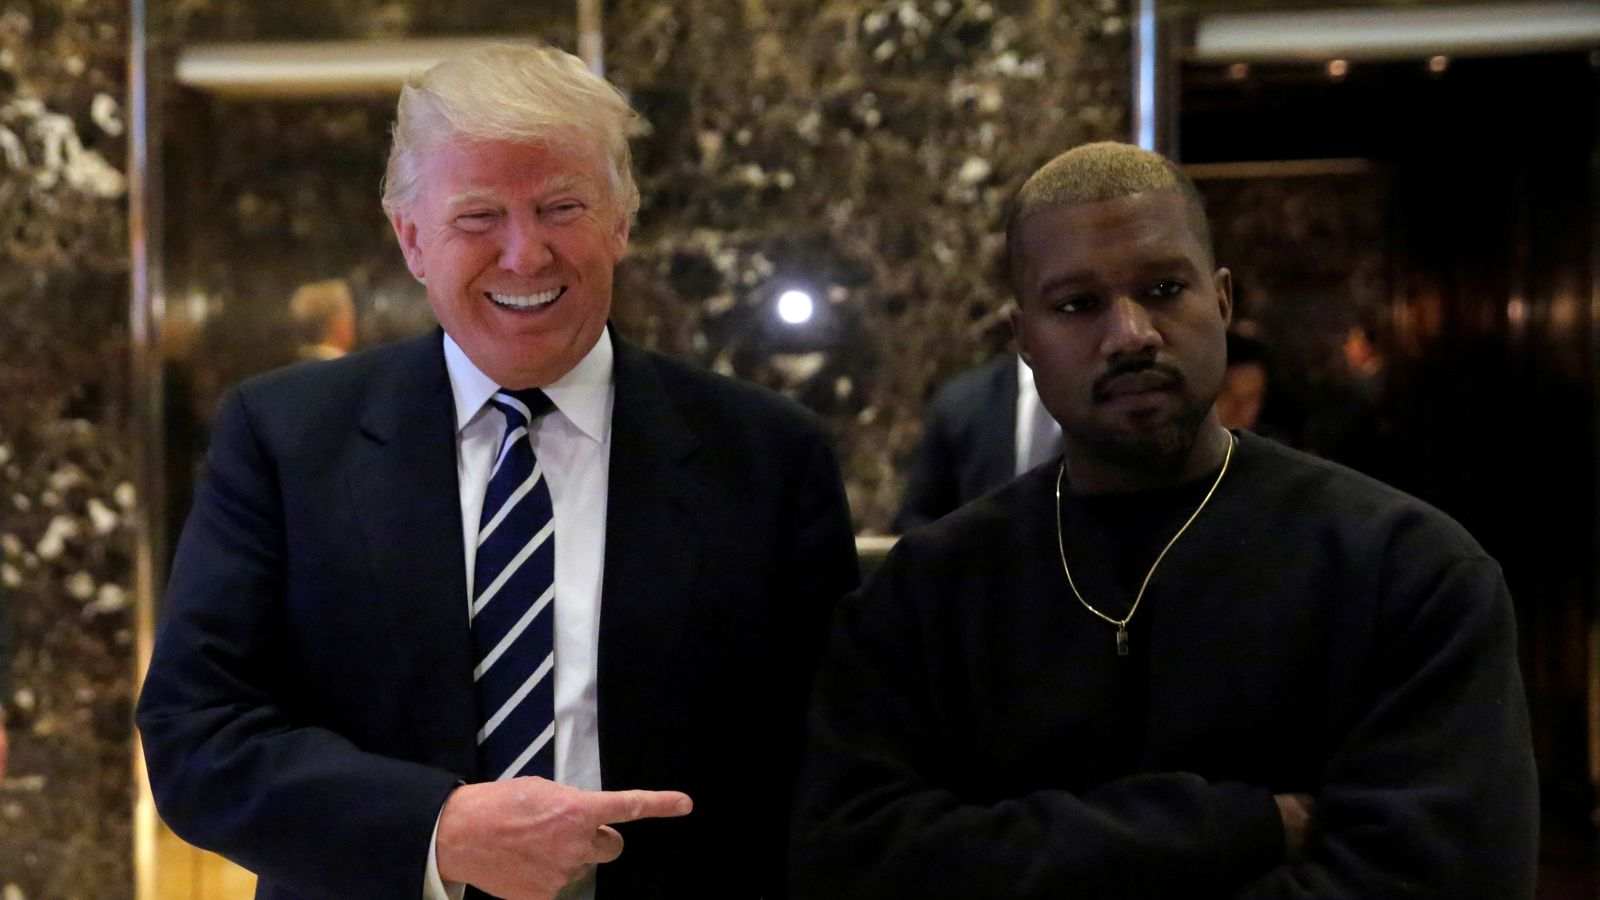 Kanye West calls Donald Trump his 'brother'